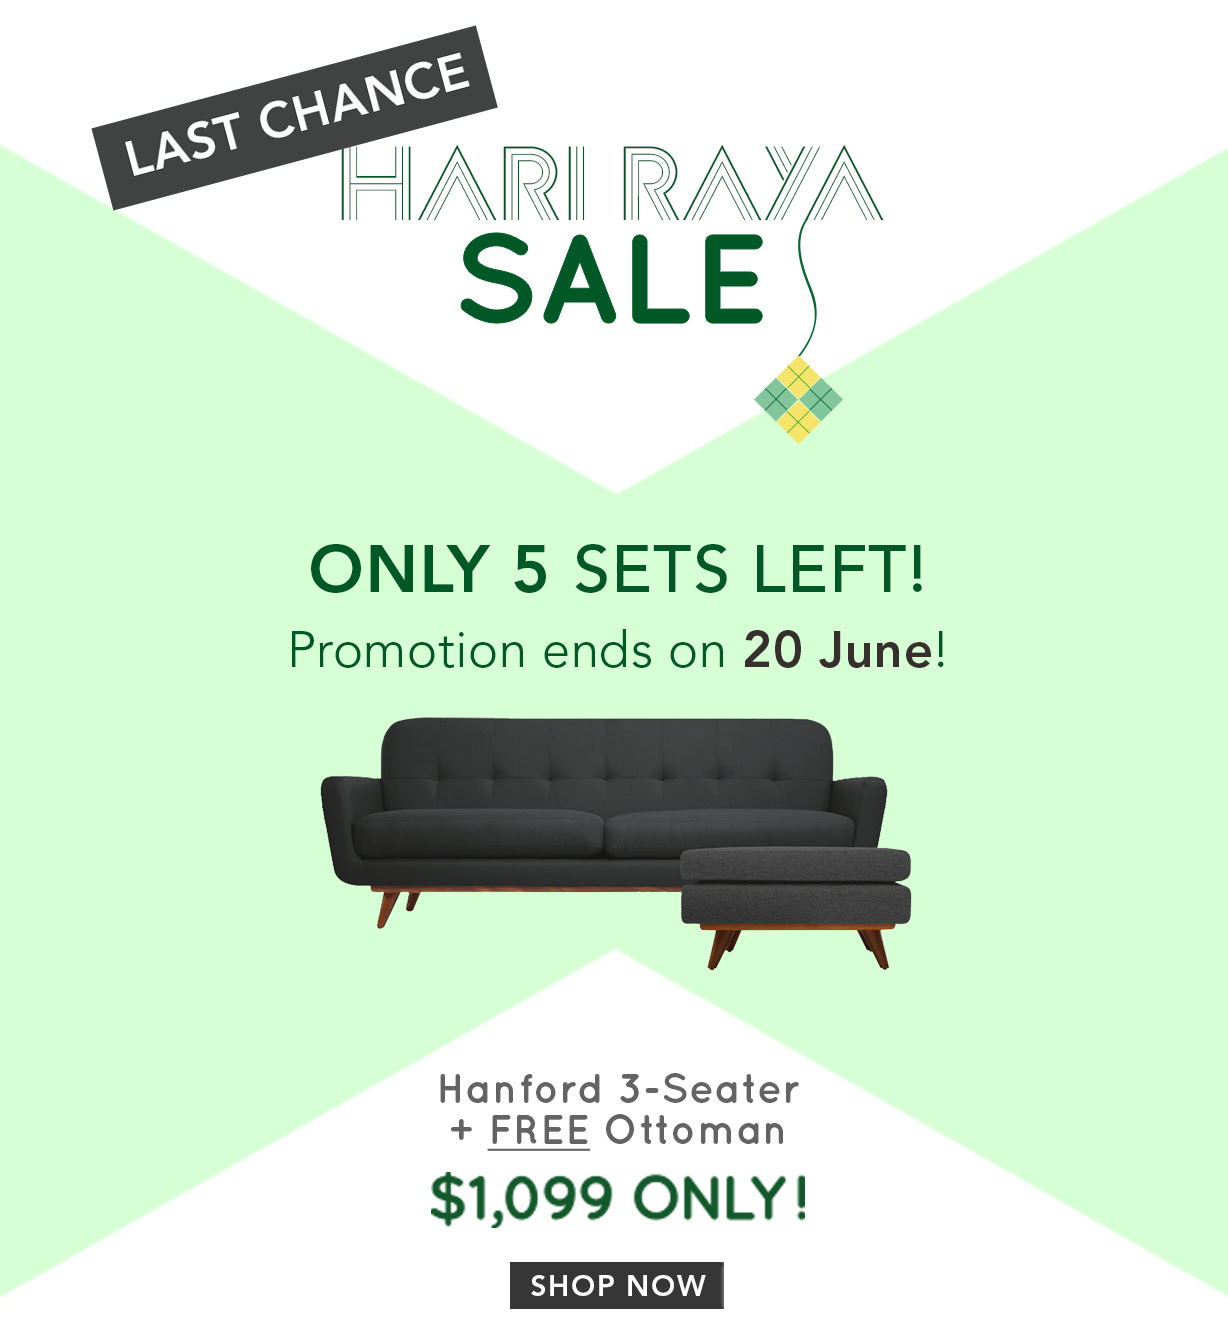 Castlery Celebrates Hari Raya – Free Ottoman With Hanford Sofa Purchase